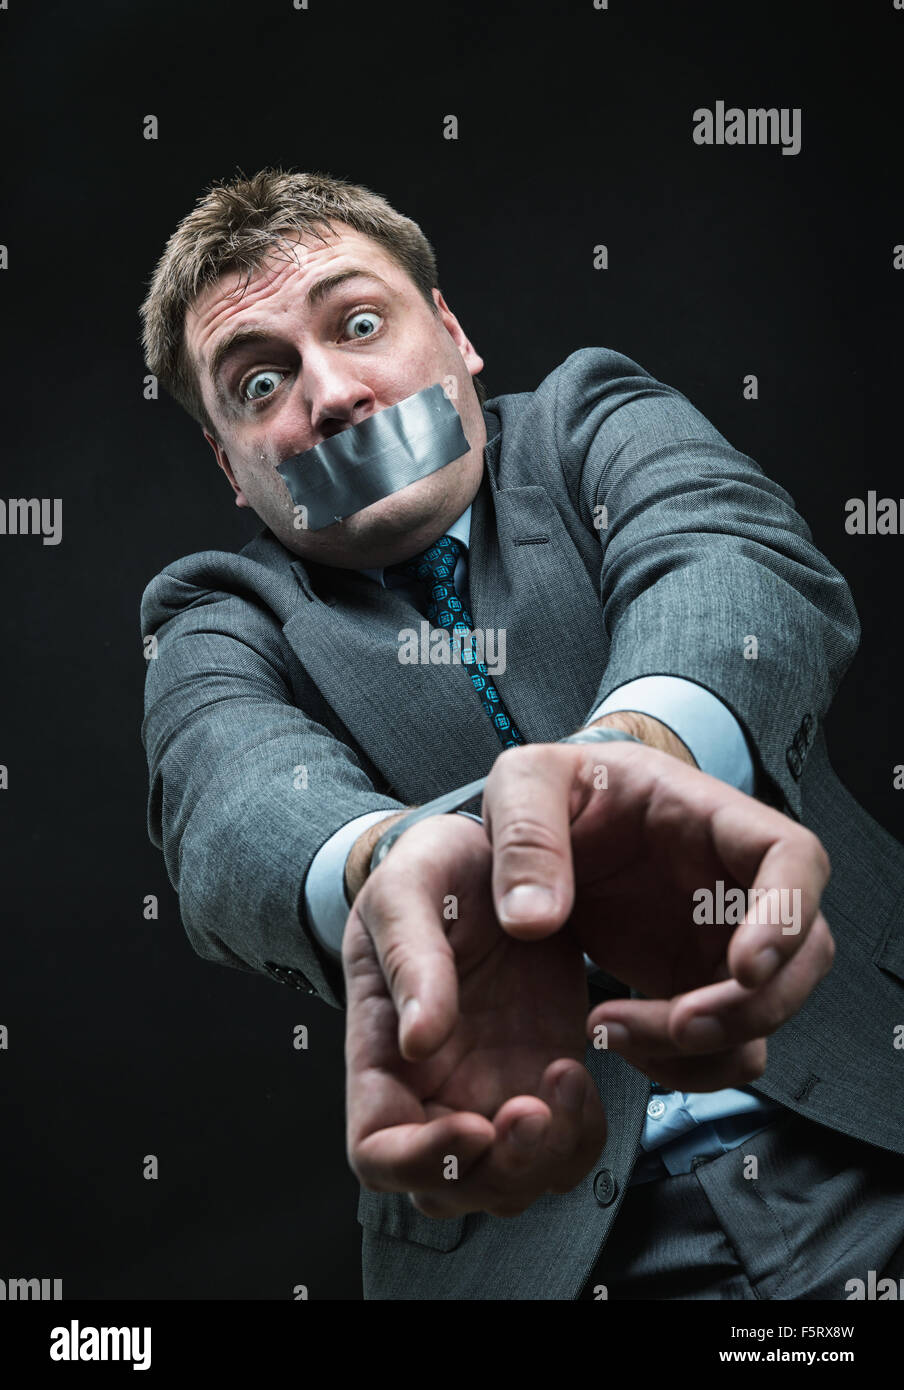 Man with mouth and hands  covered by masking tape, studio shoot - Stock Image